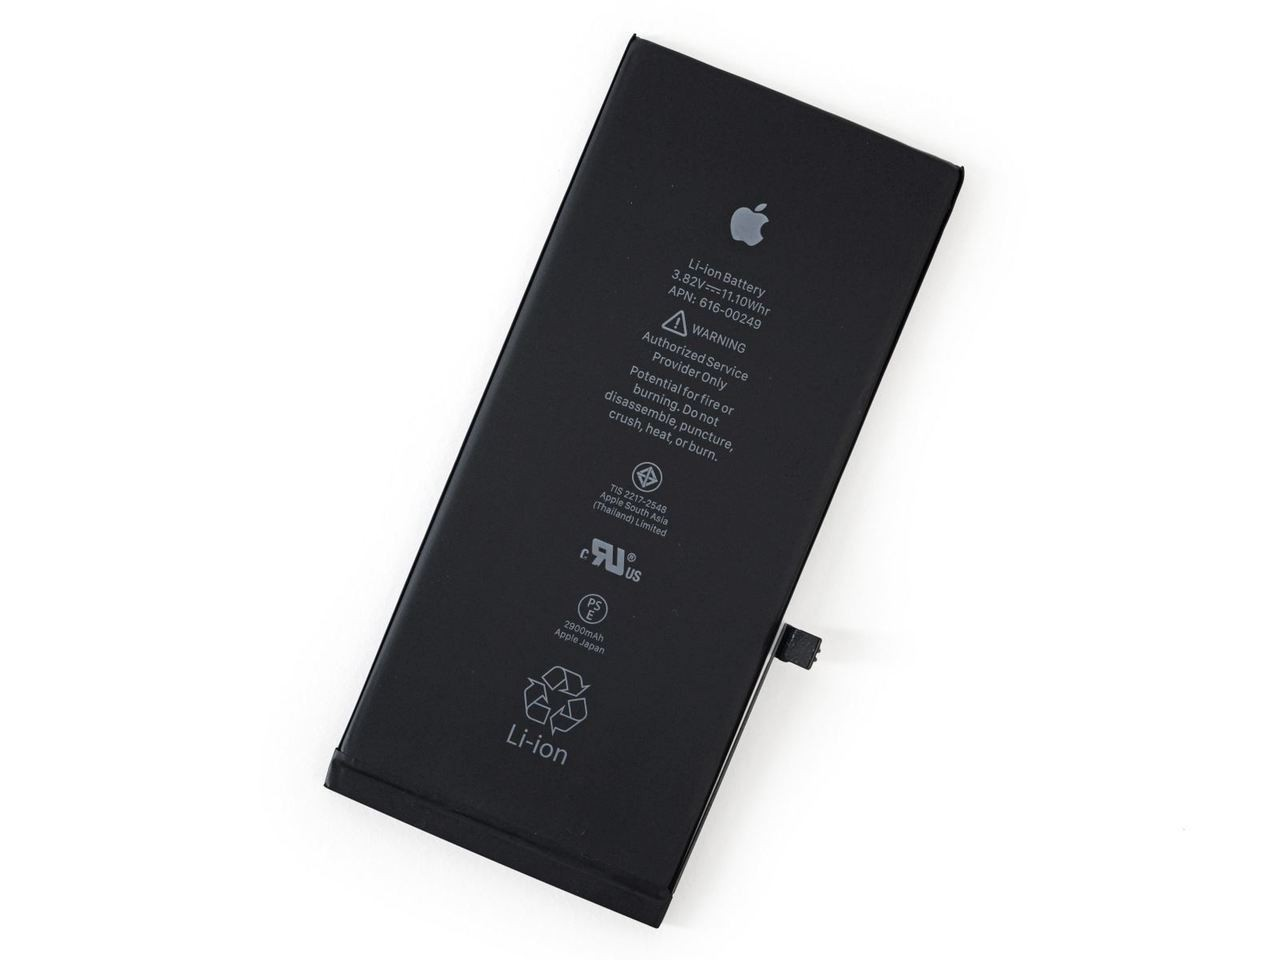 Apple iPhone 8 Plus Battery 80% Minimum SOH Tested for Key Functions, R2/Ready for Resale, Jacksonville FL